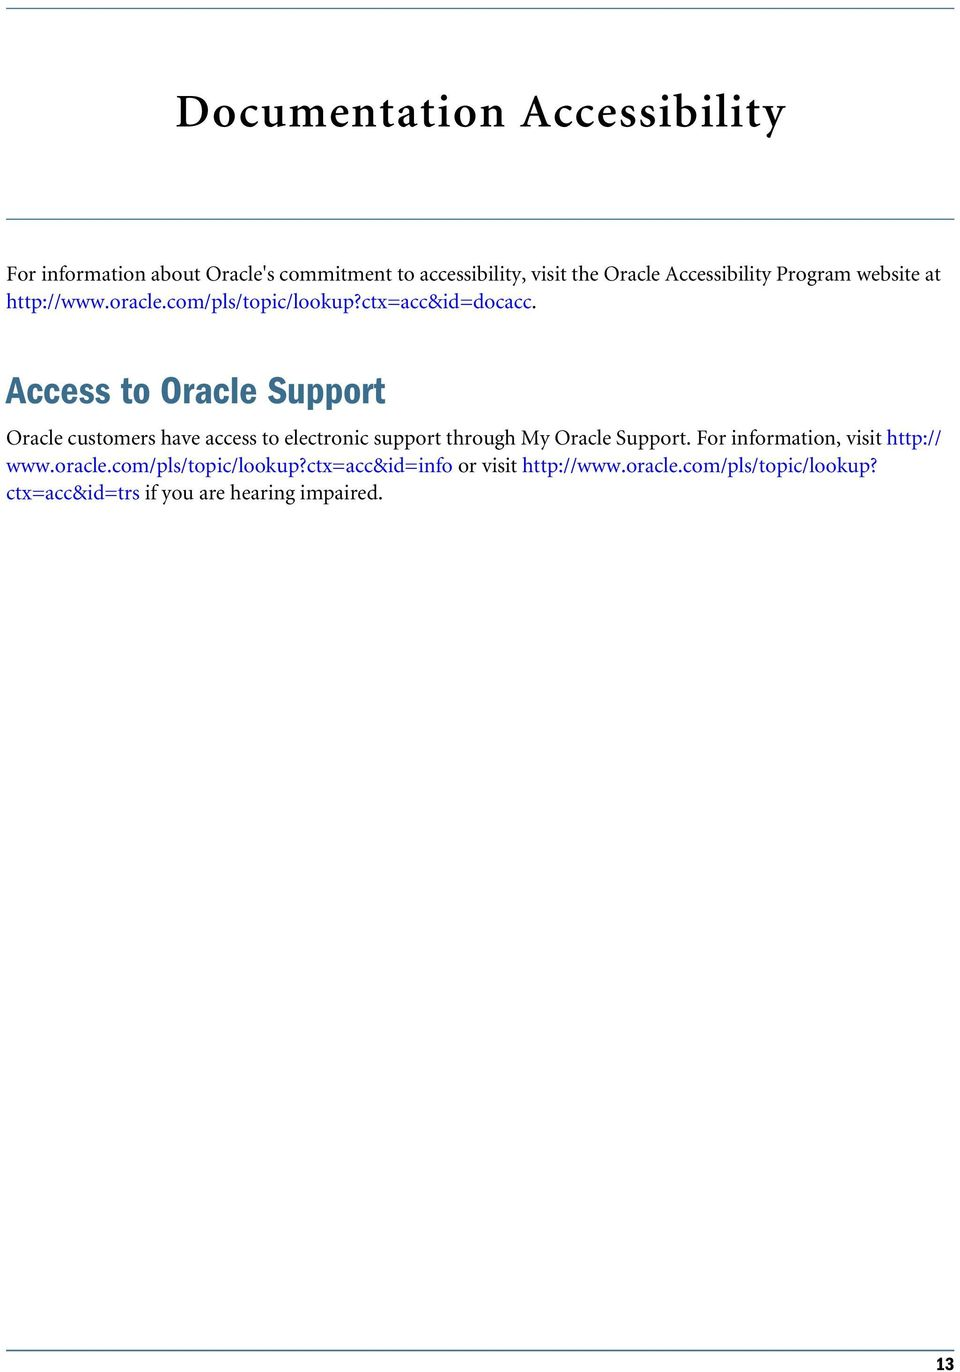 Access to Orace Support Orace customers have access to eectronic support through My Orace Support.